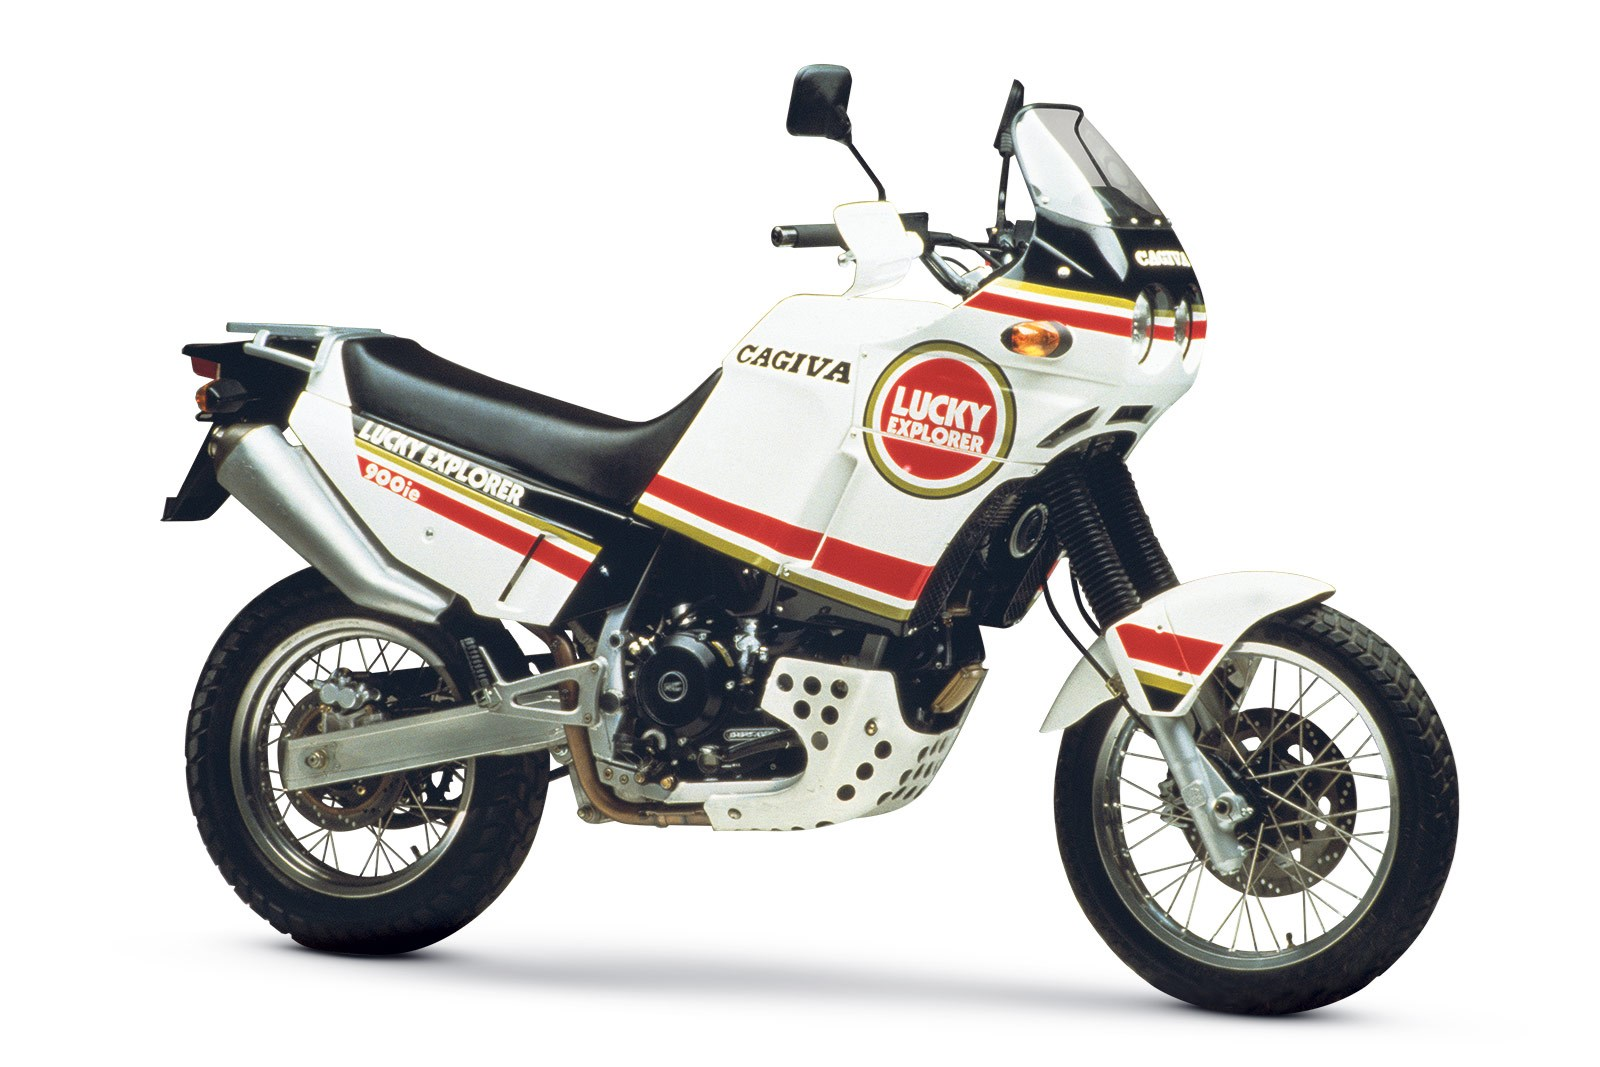 Cagiva Canyon 600 images #94247